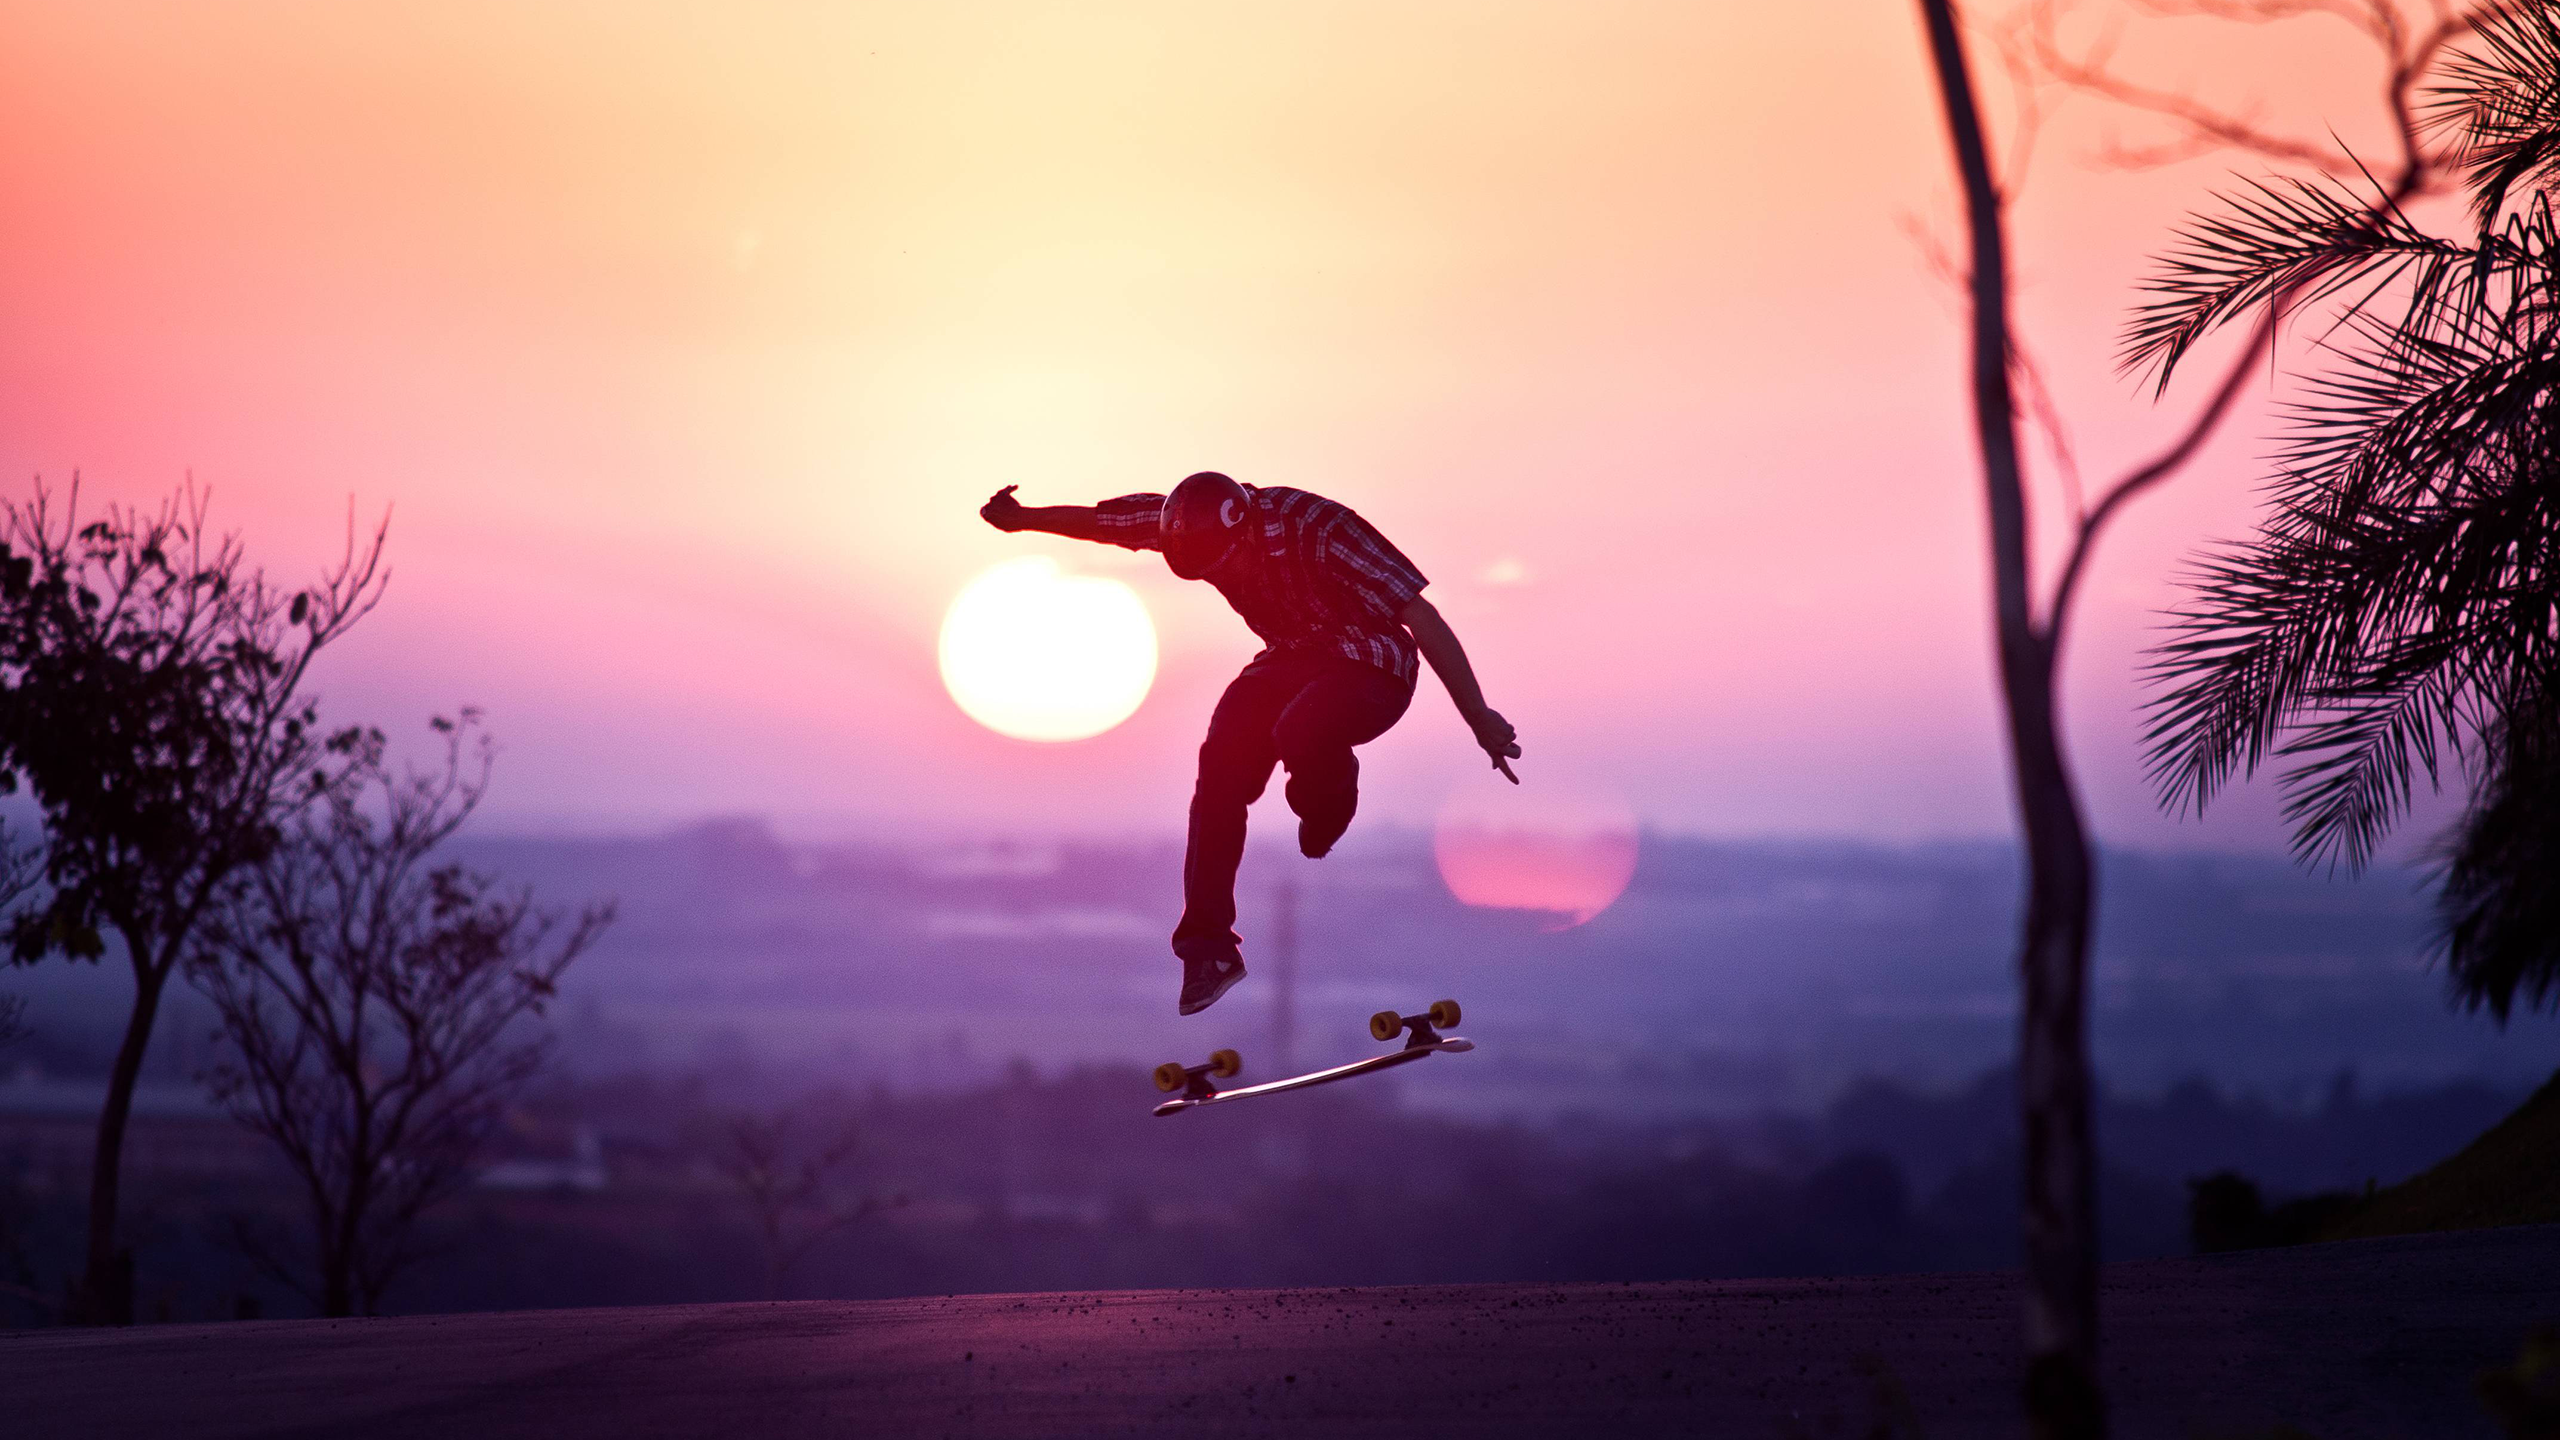 Skateboard HD Backgrounds for PC